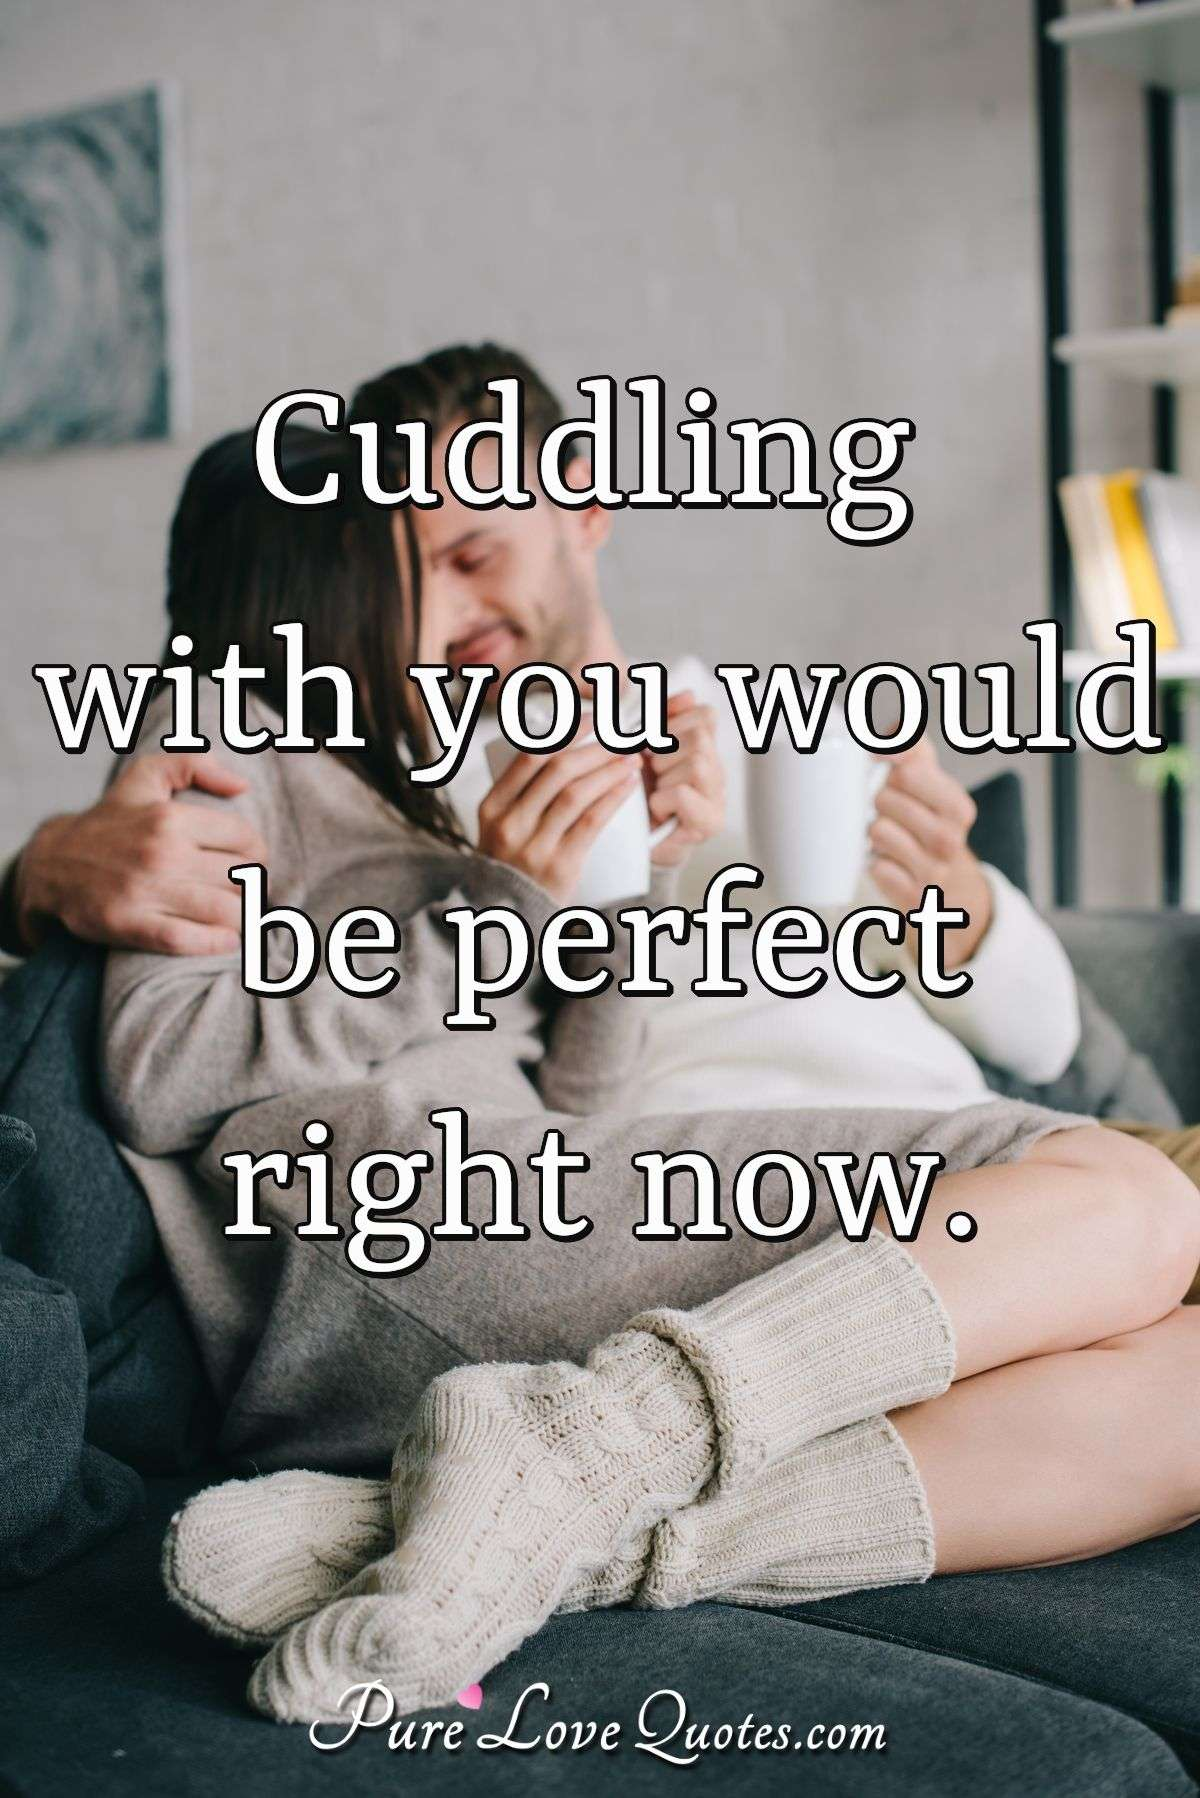 Cuddling with you would be perfect right now. - Anonymous